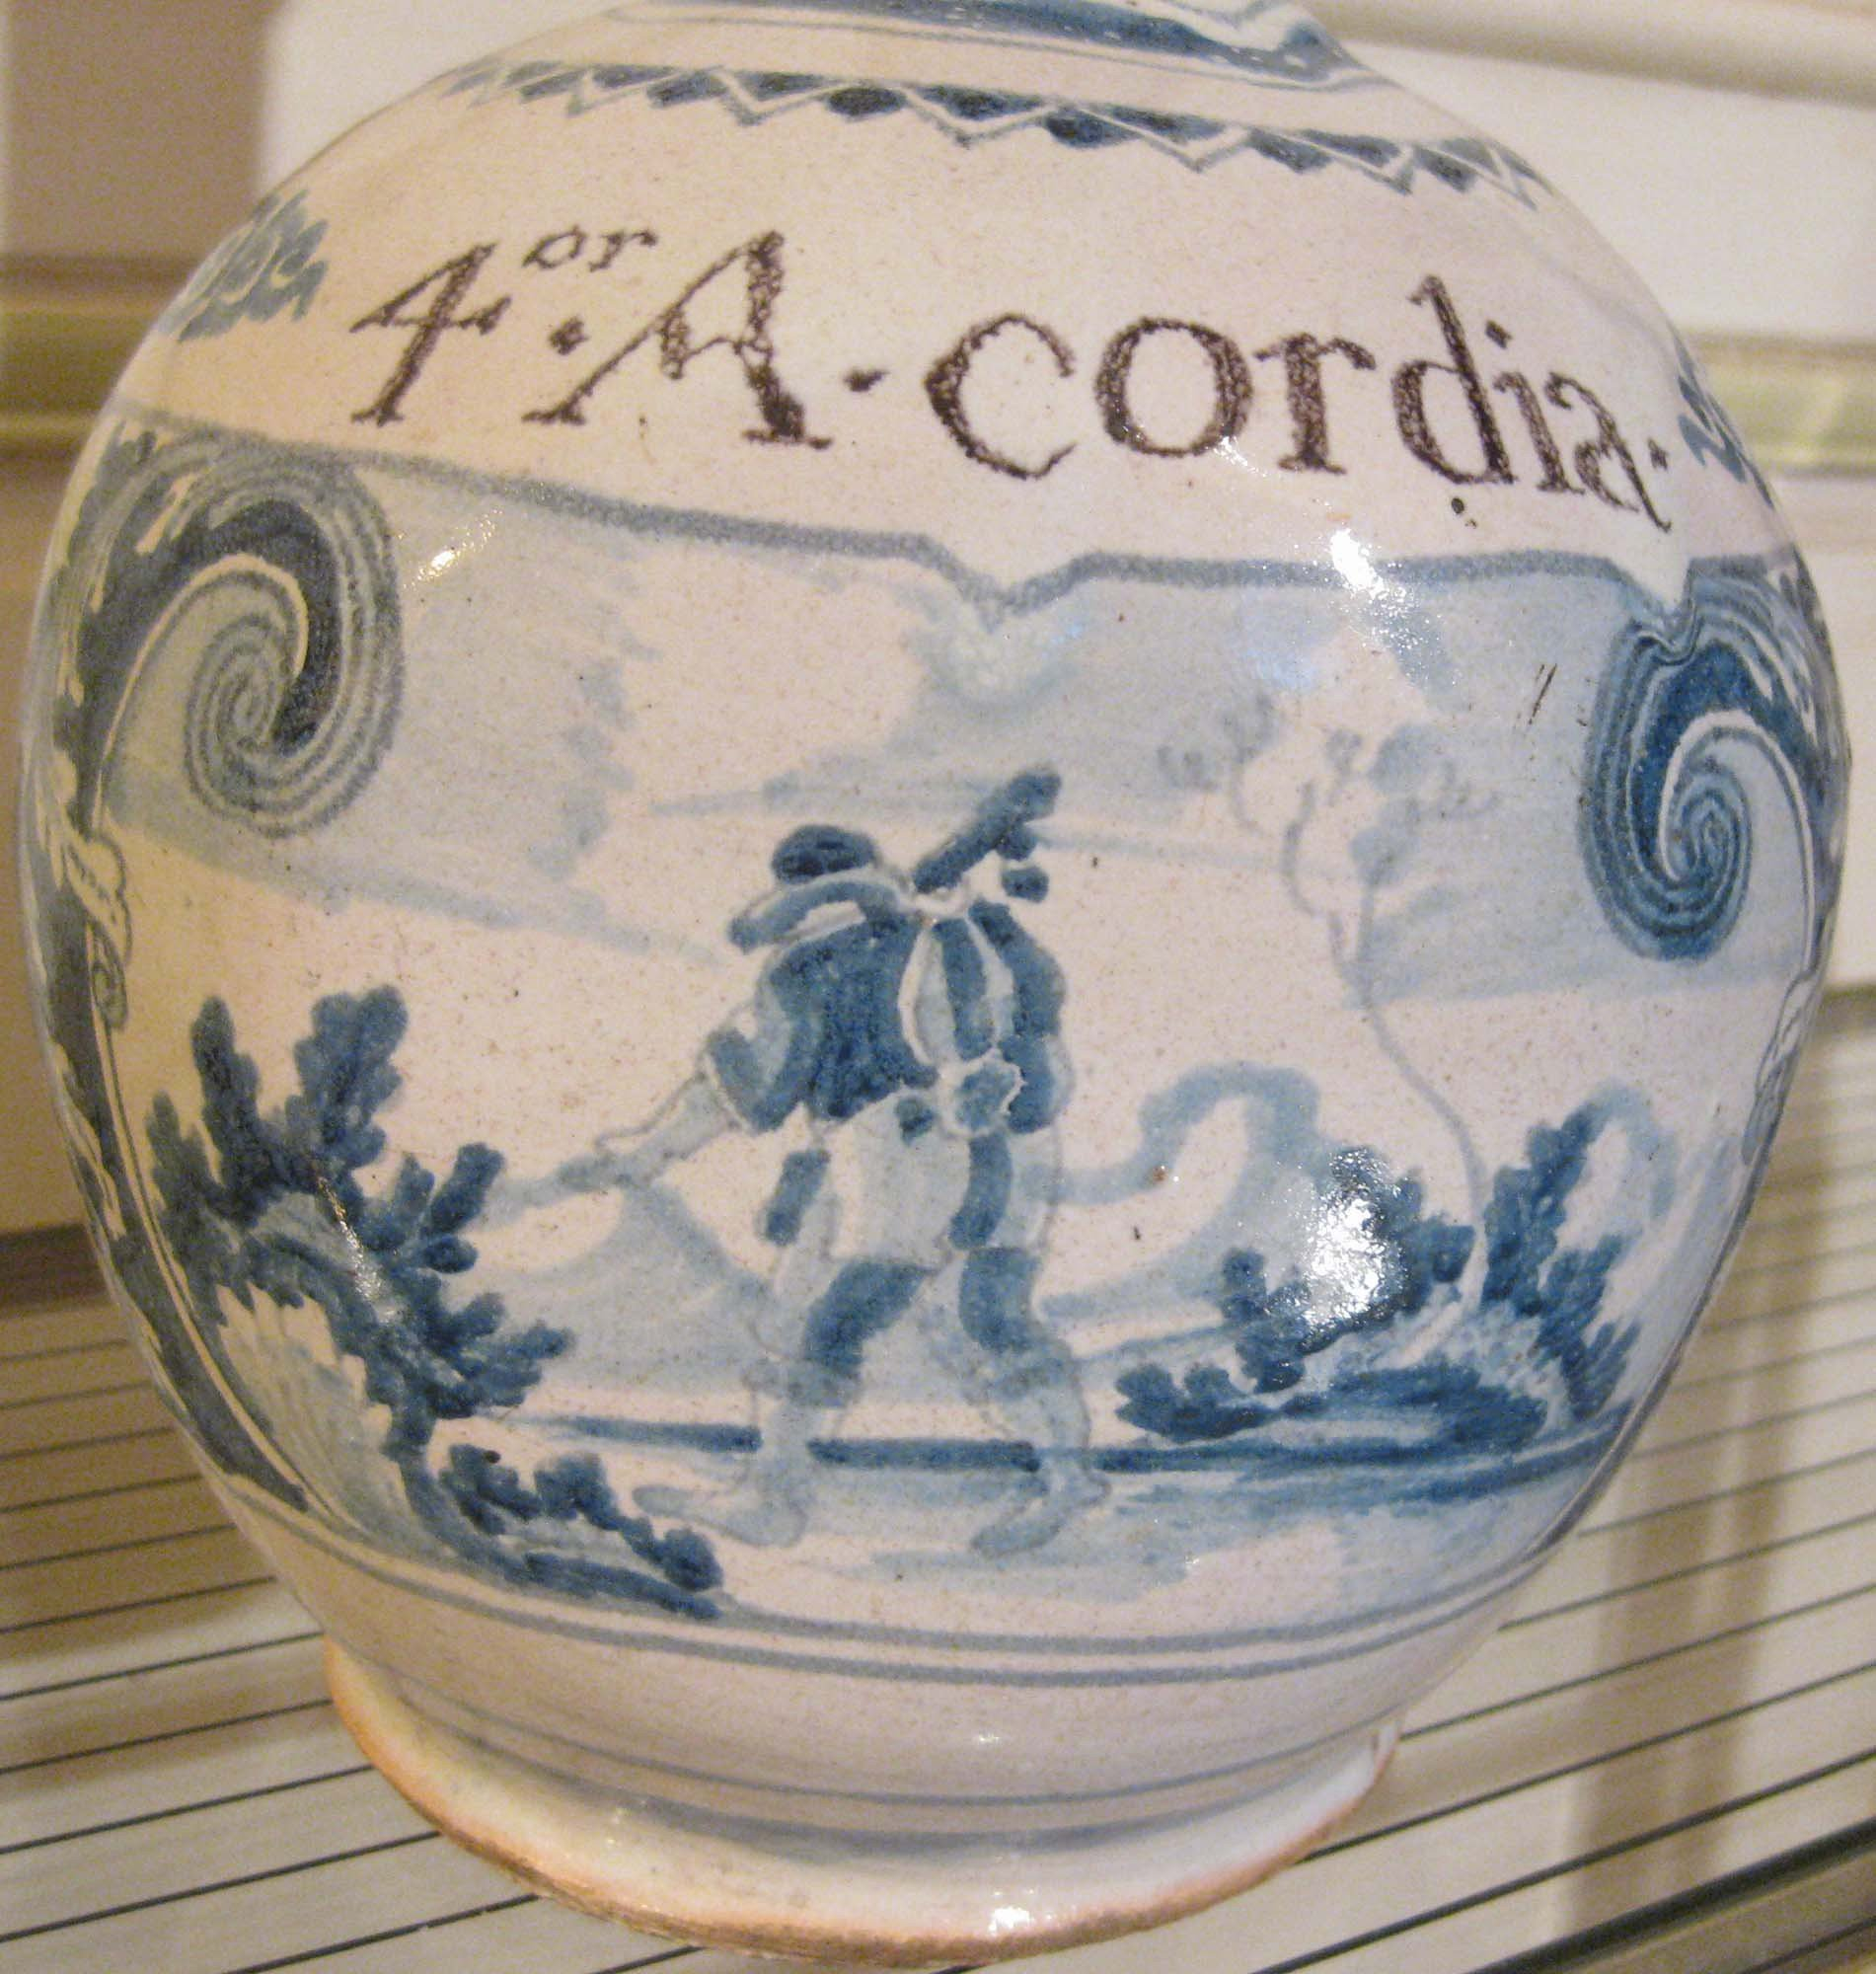 galerie-bosetti-antiquites Nevers 17ème gourde inscription 4.A.CORDIA.